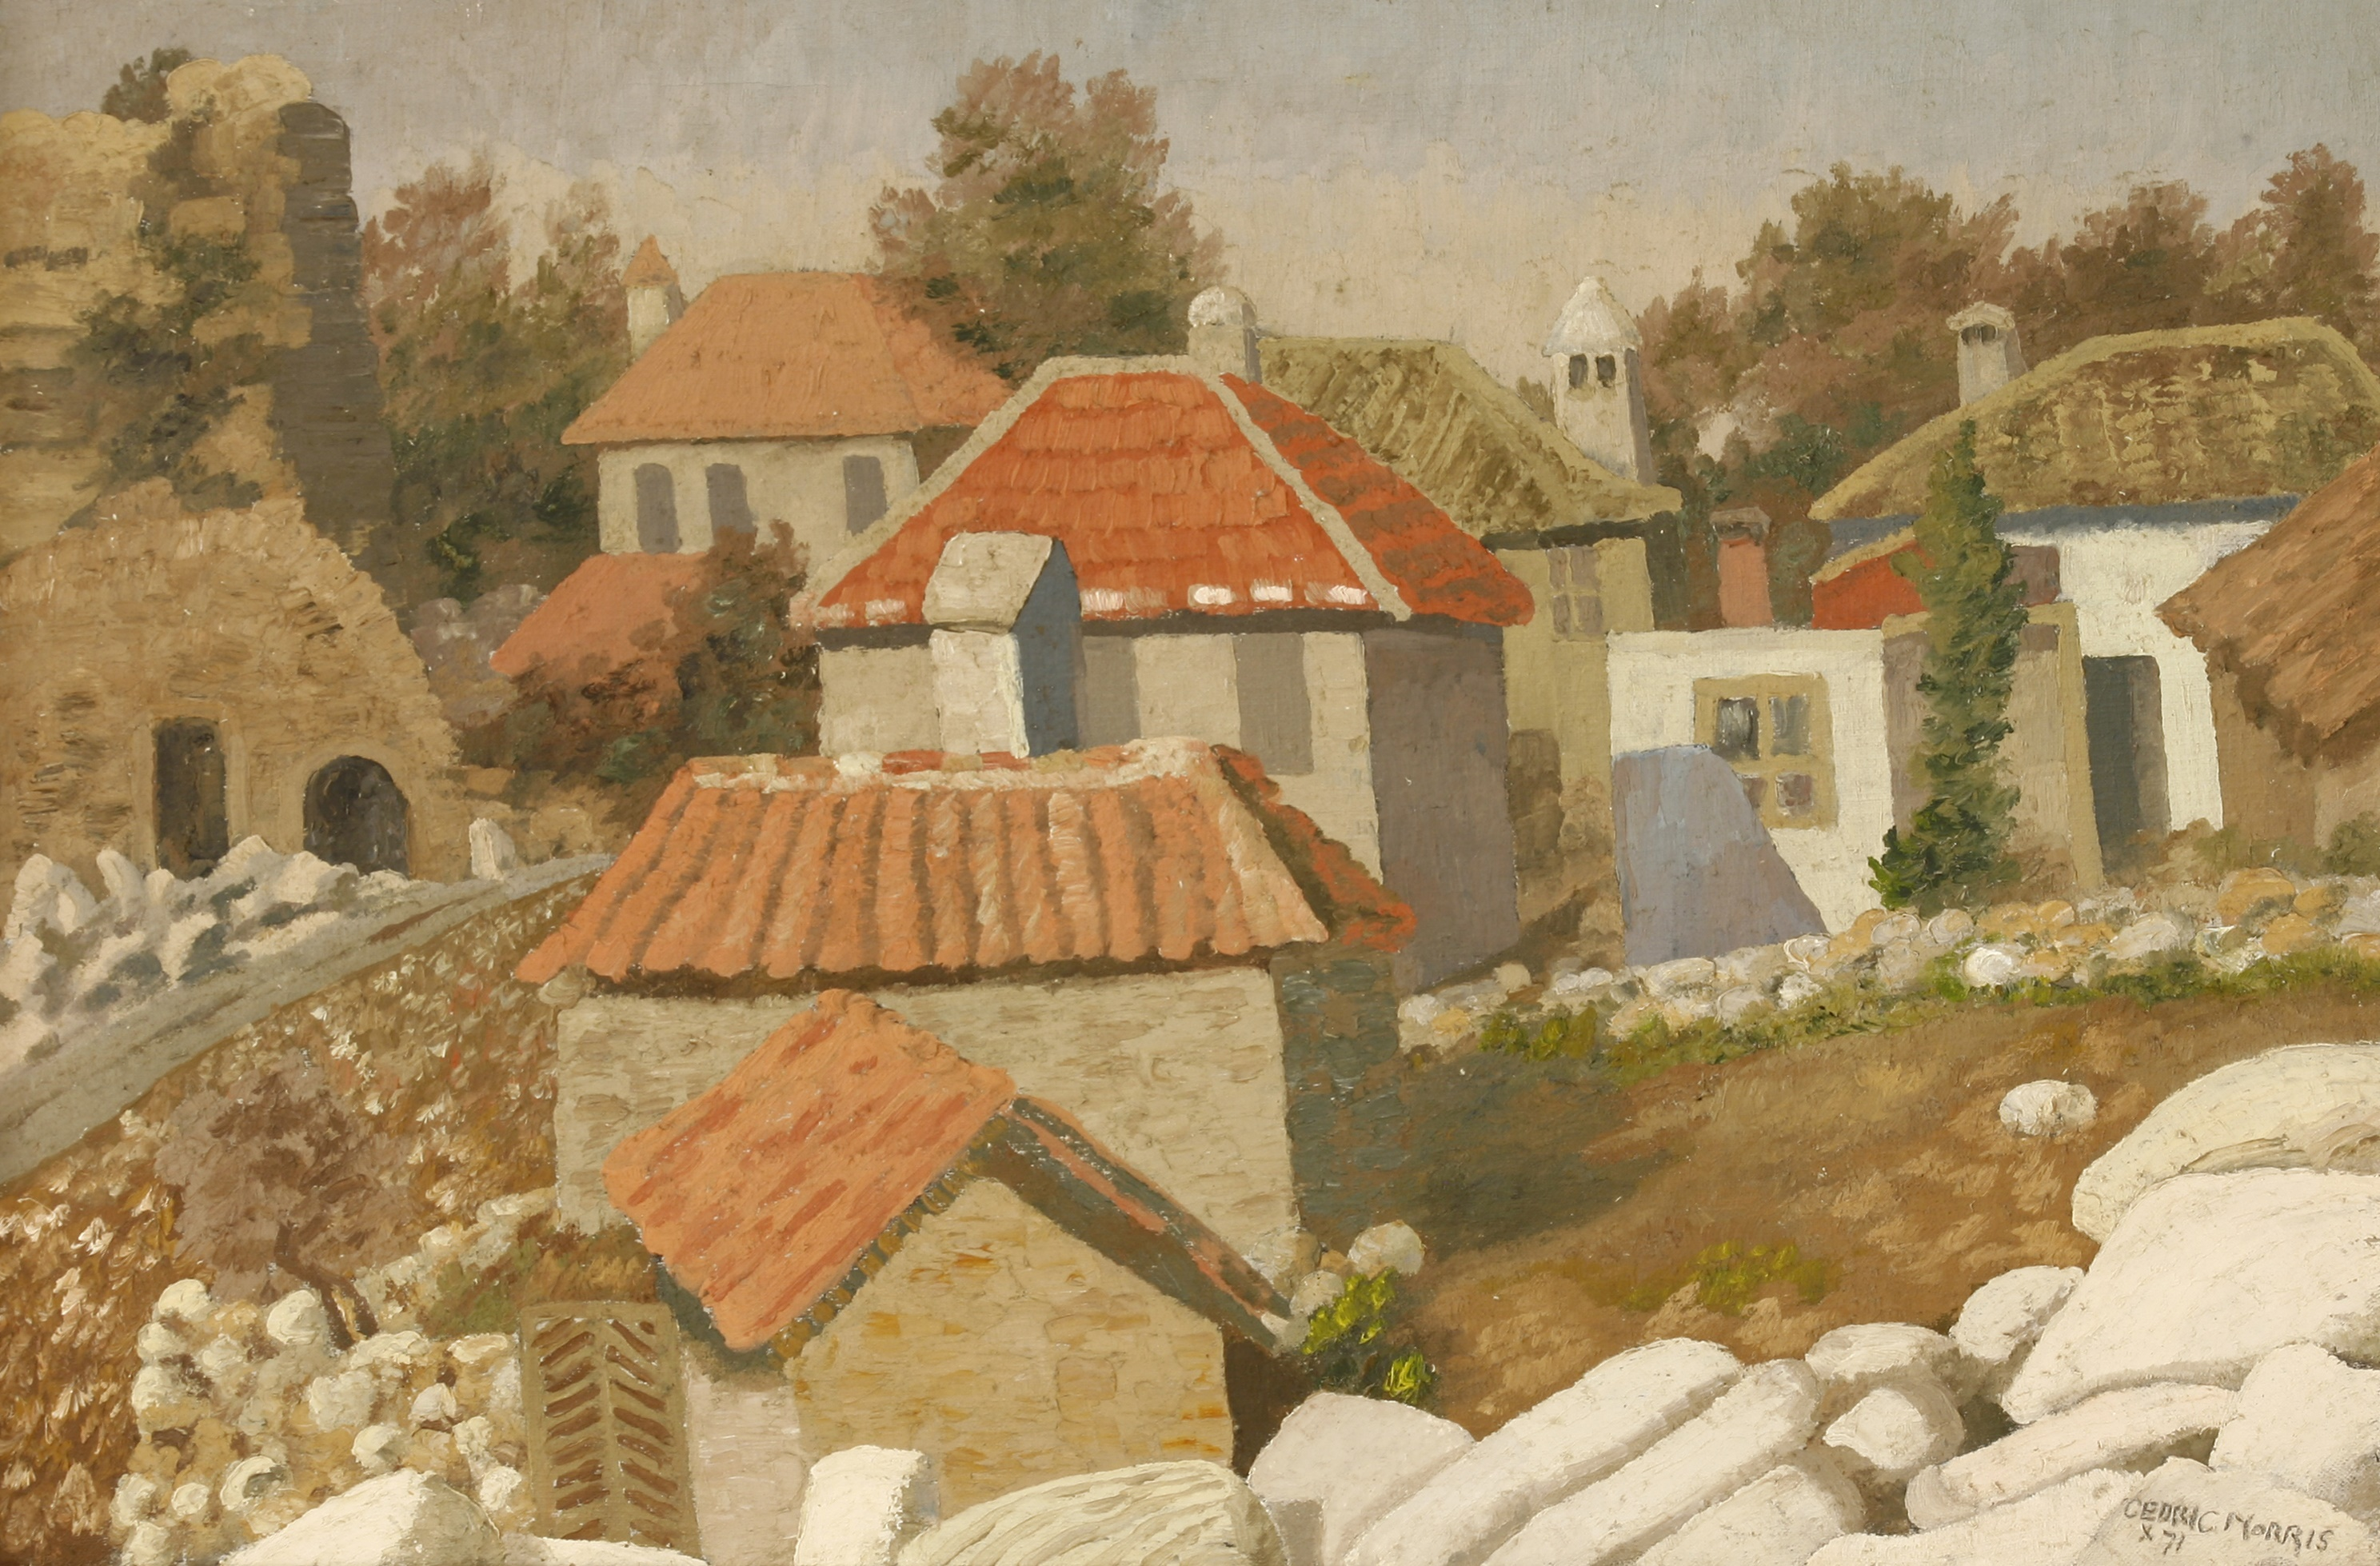 Sir Cedric Lockwood Morris (1889-1982), 9th Bart VIEW OF A TURKISH VILLAGE NEAR IZMIR